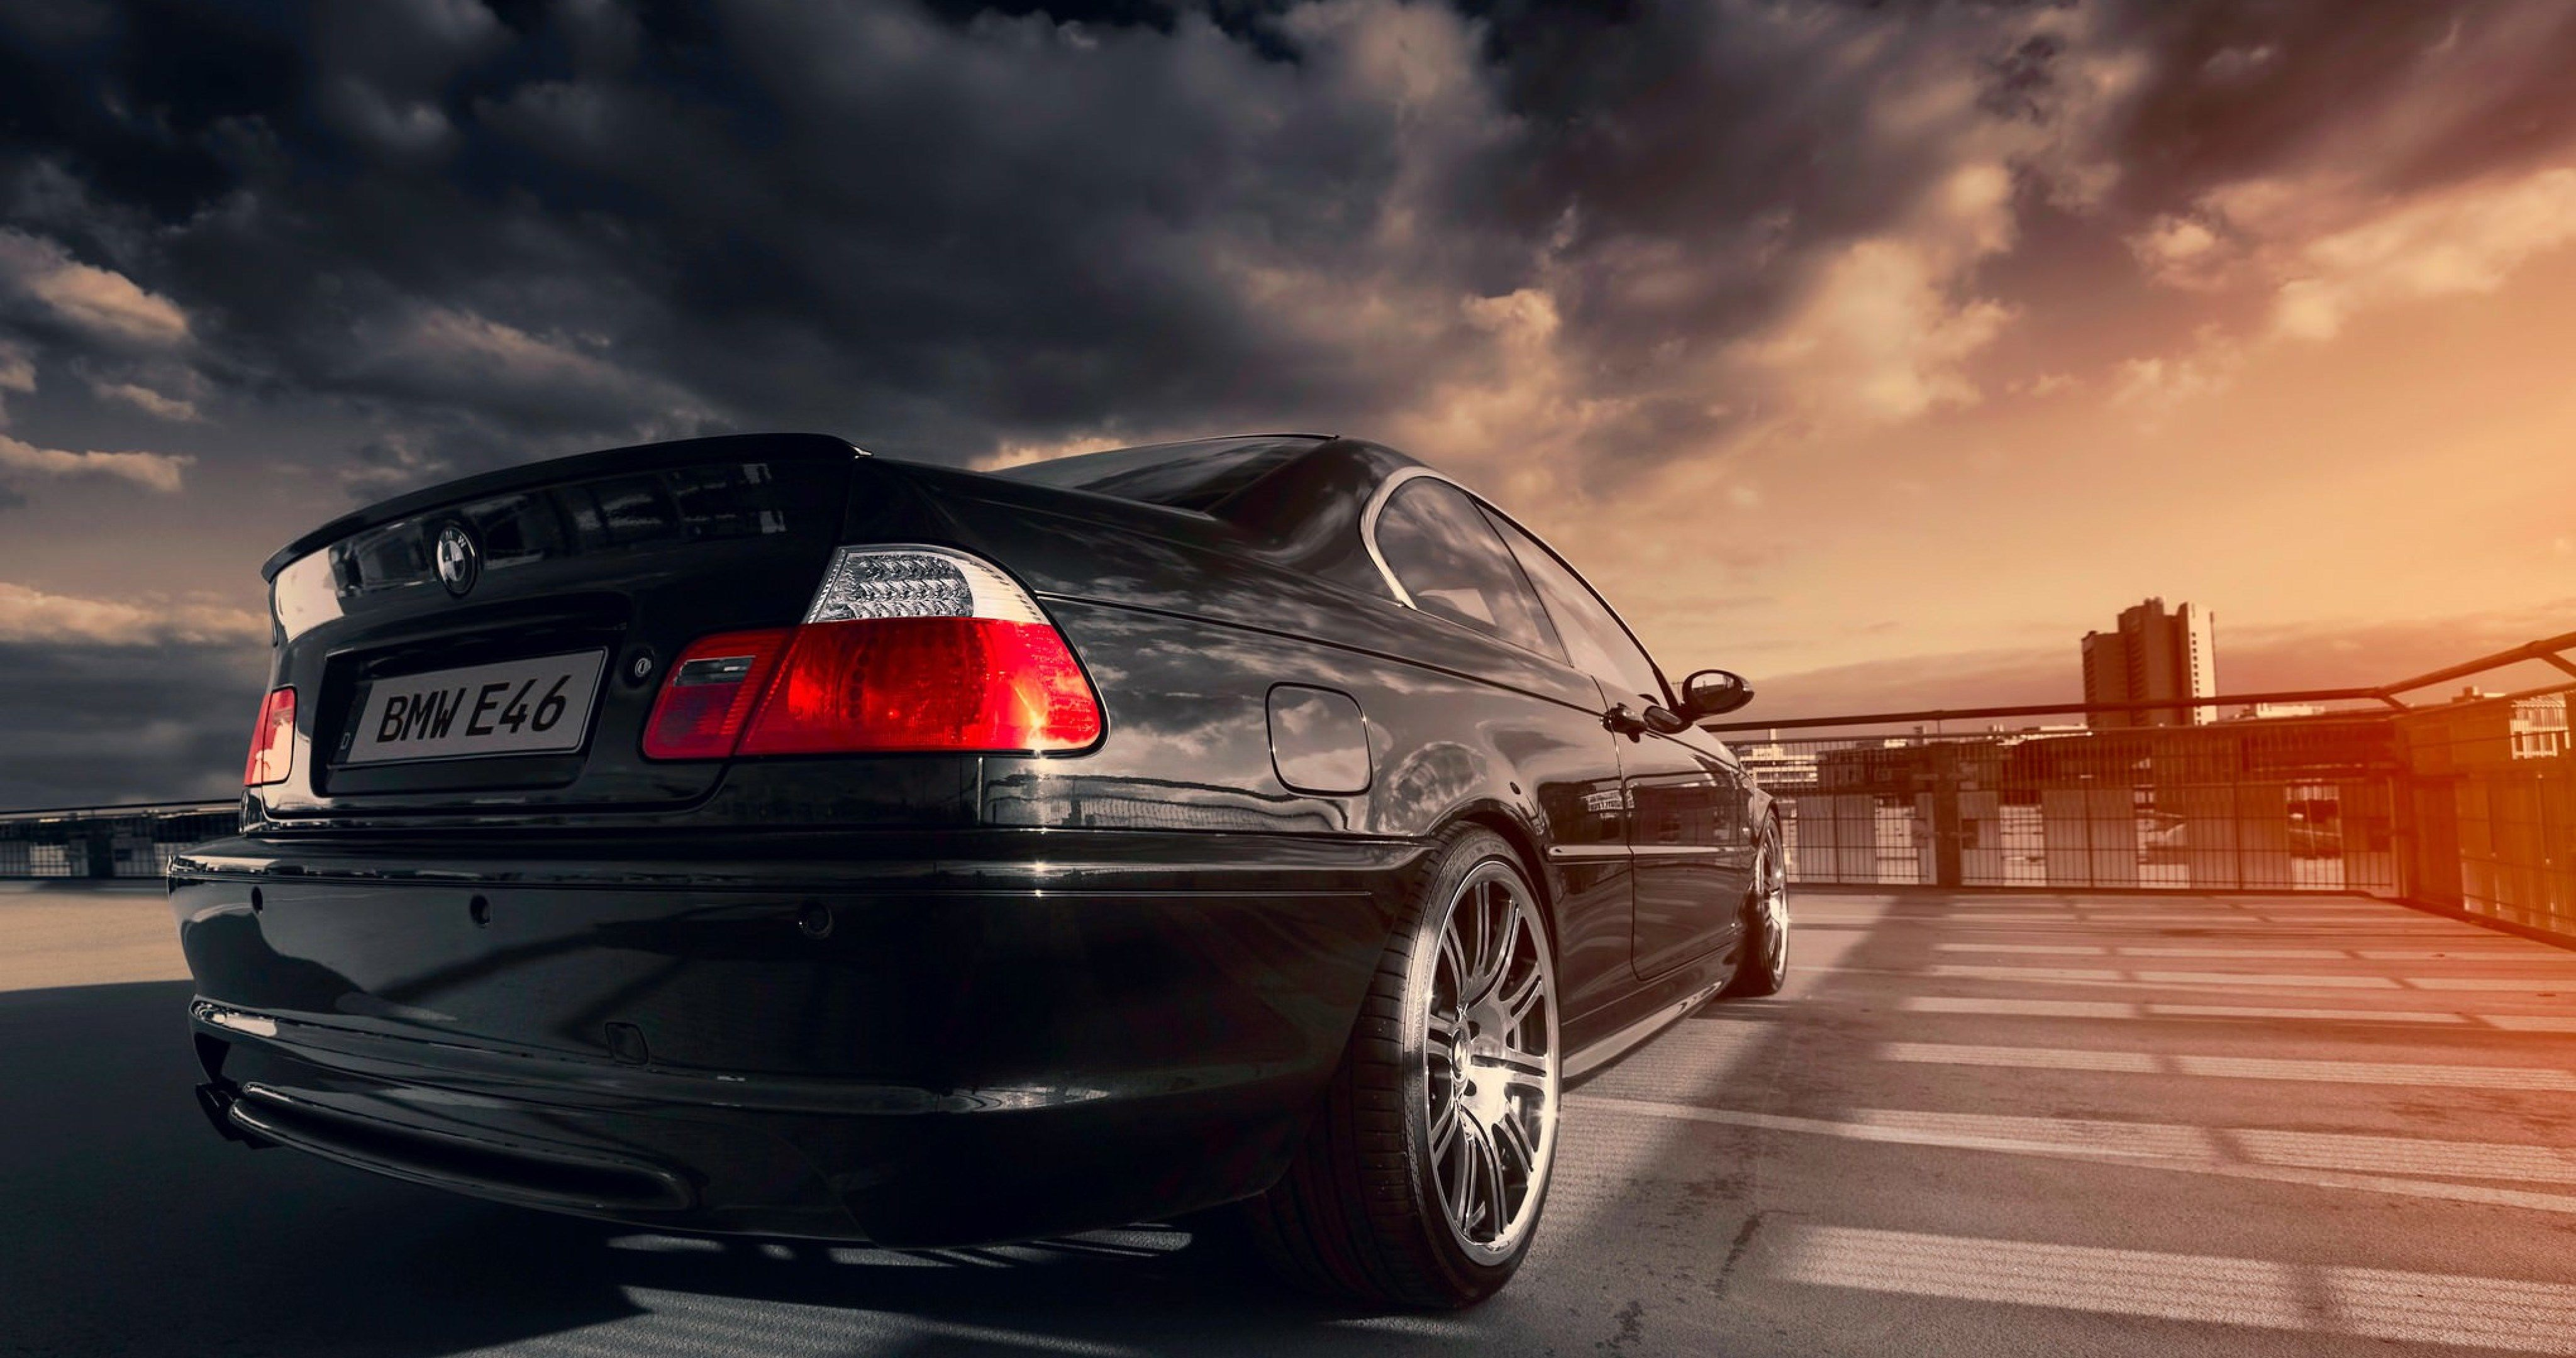 Black bmw e46 328ci 4k ultra hd wallpaper ololoshka pinterest black bmw e46 328ci 4k ultra hd wallpaper voltagebd Gallery